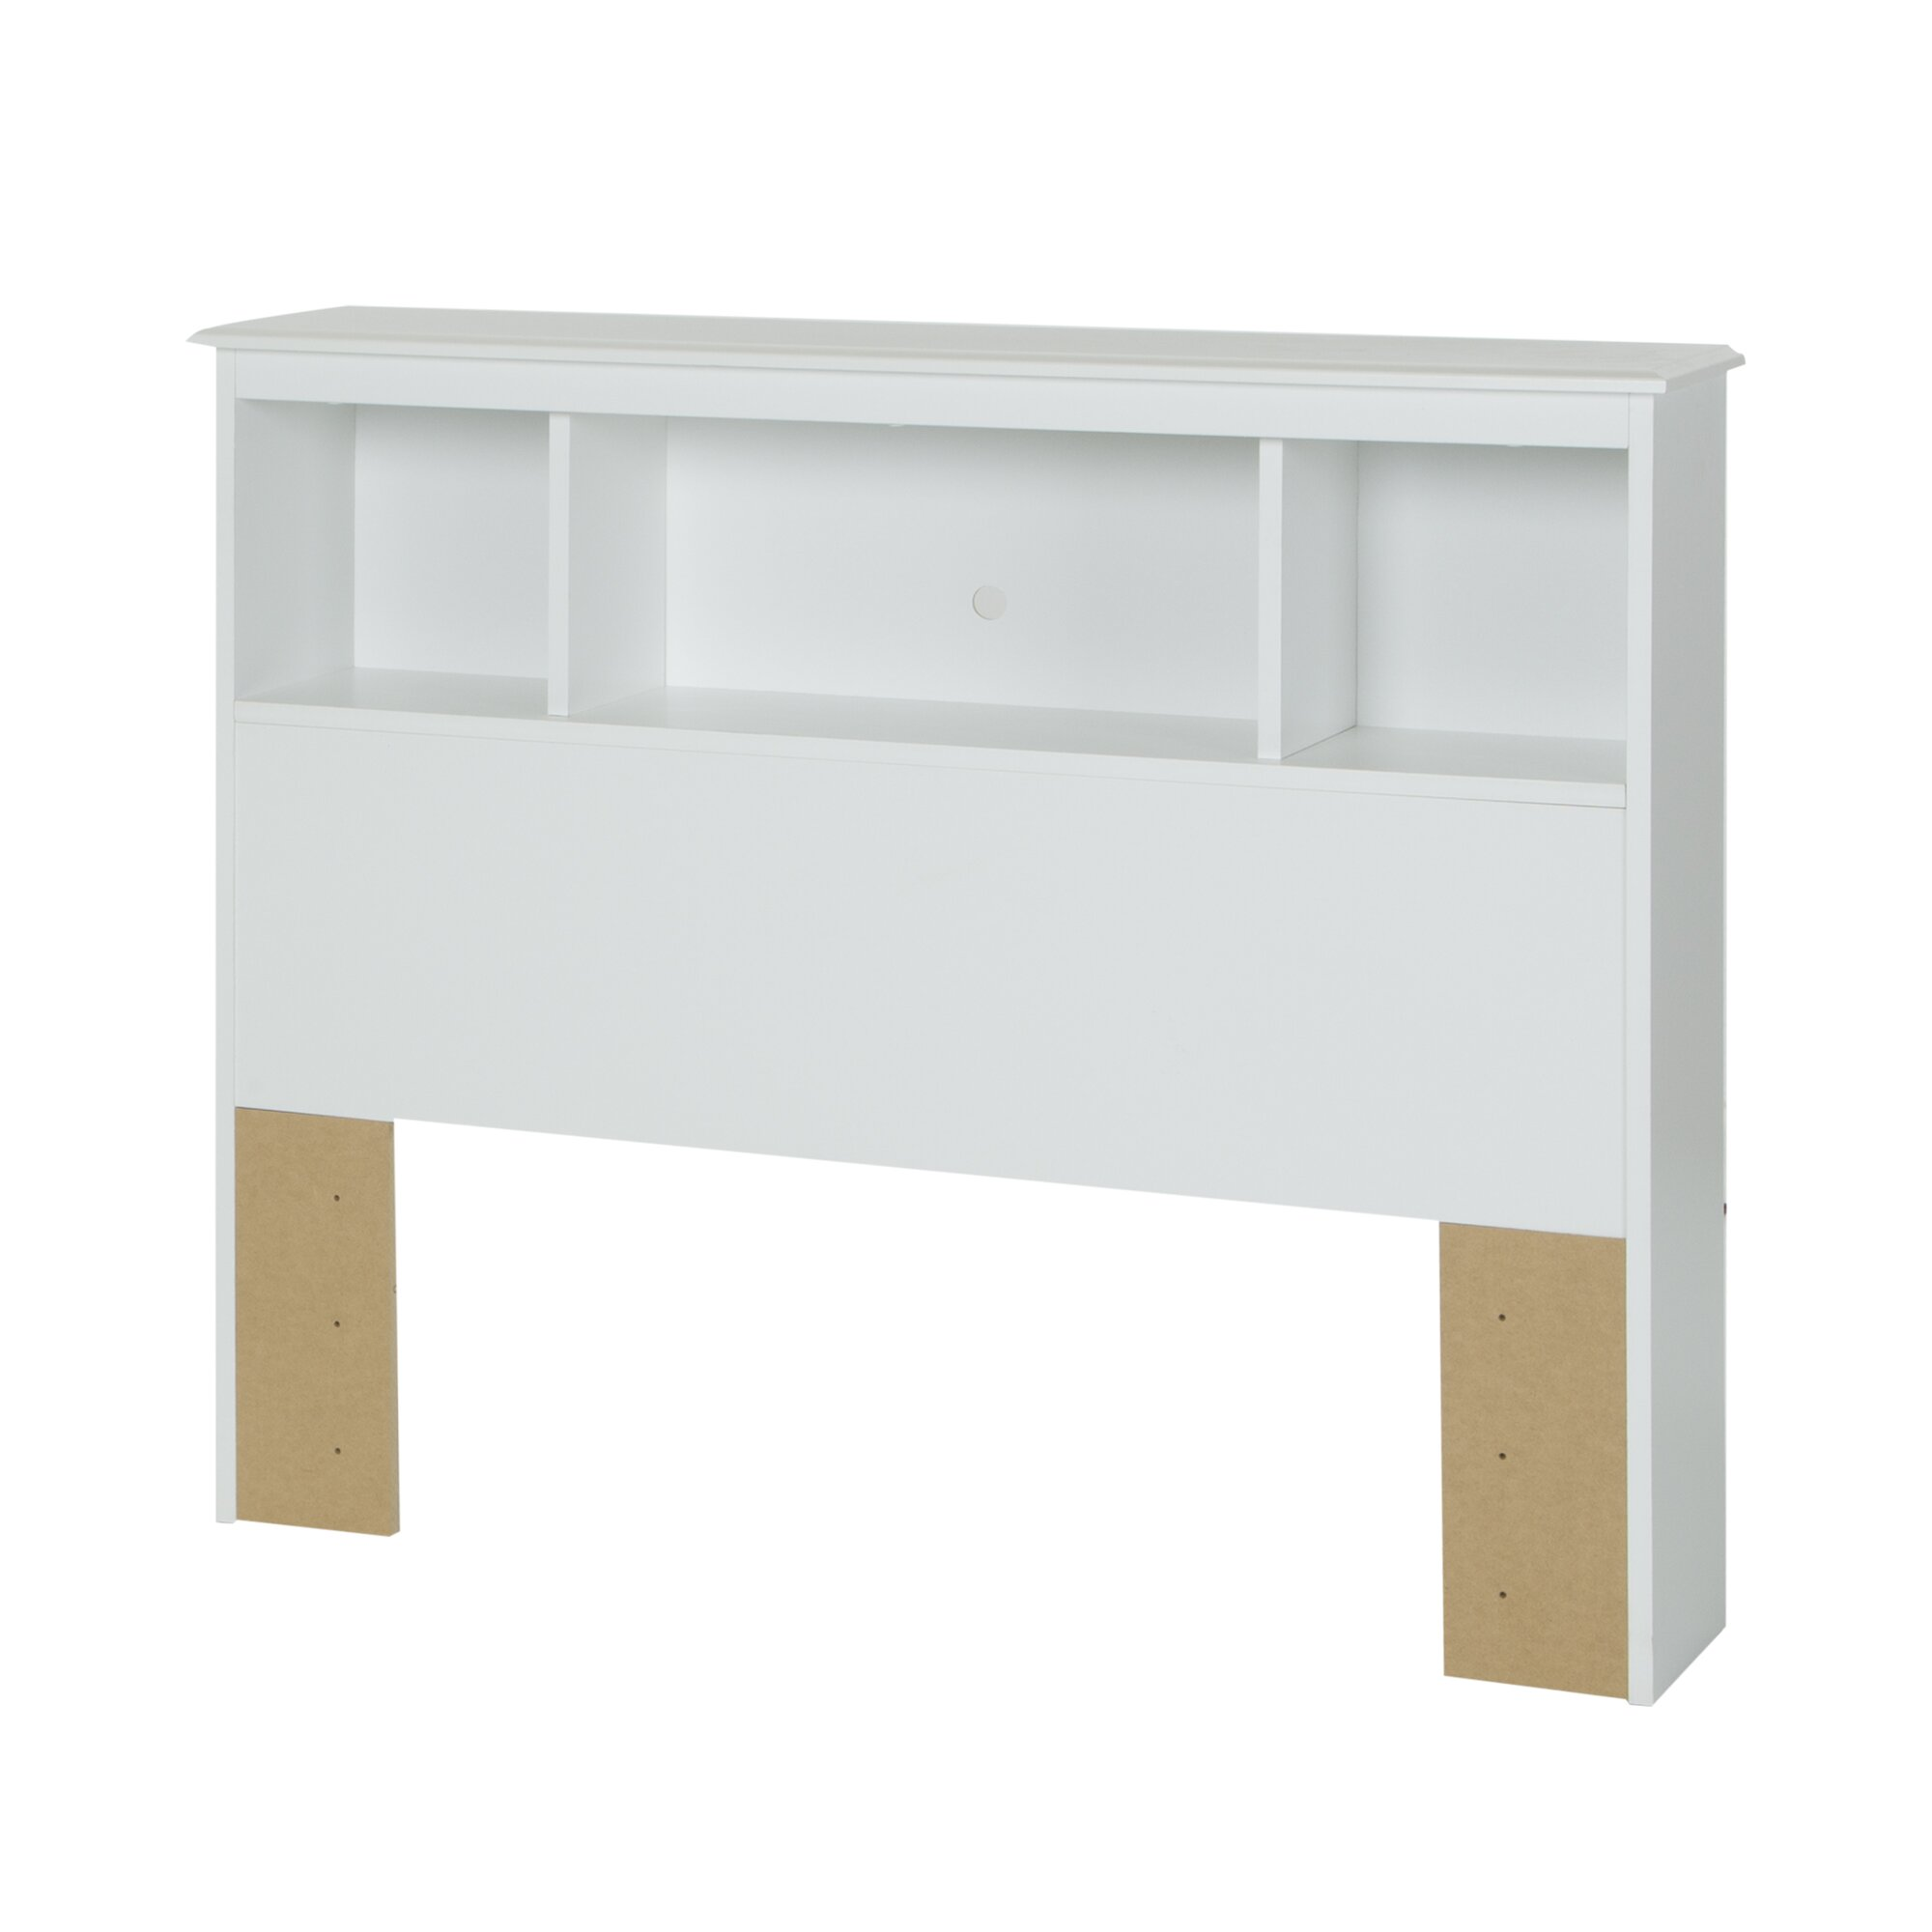 south shore crystal bookcase headboard amp reviews wayfair bookshelf headboard queen or full series 9 in beds and